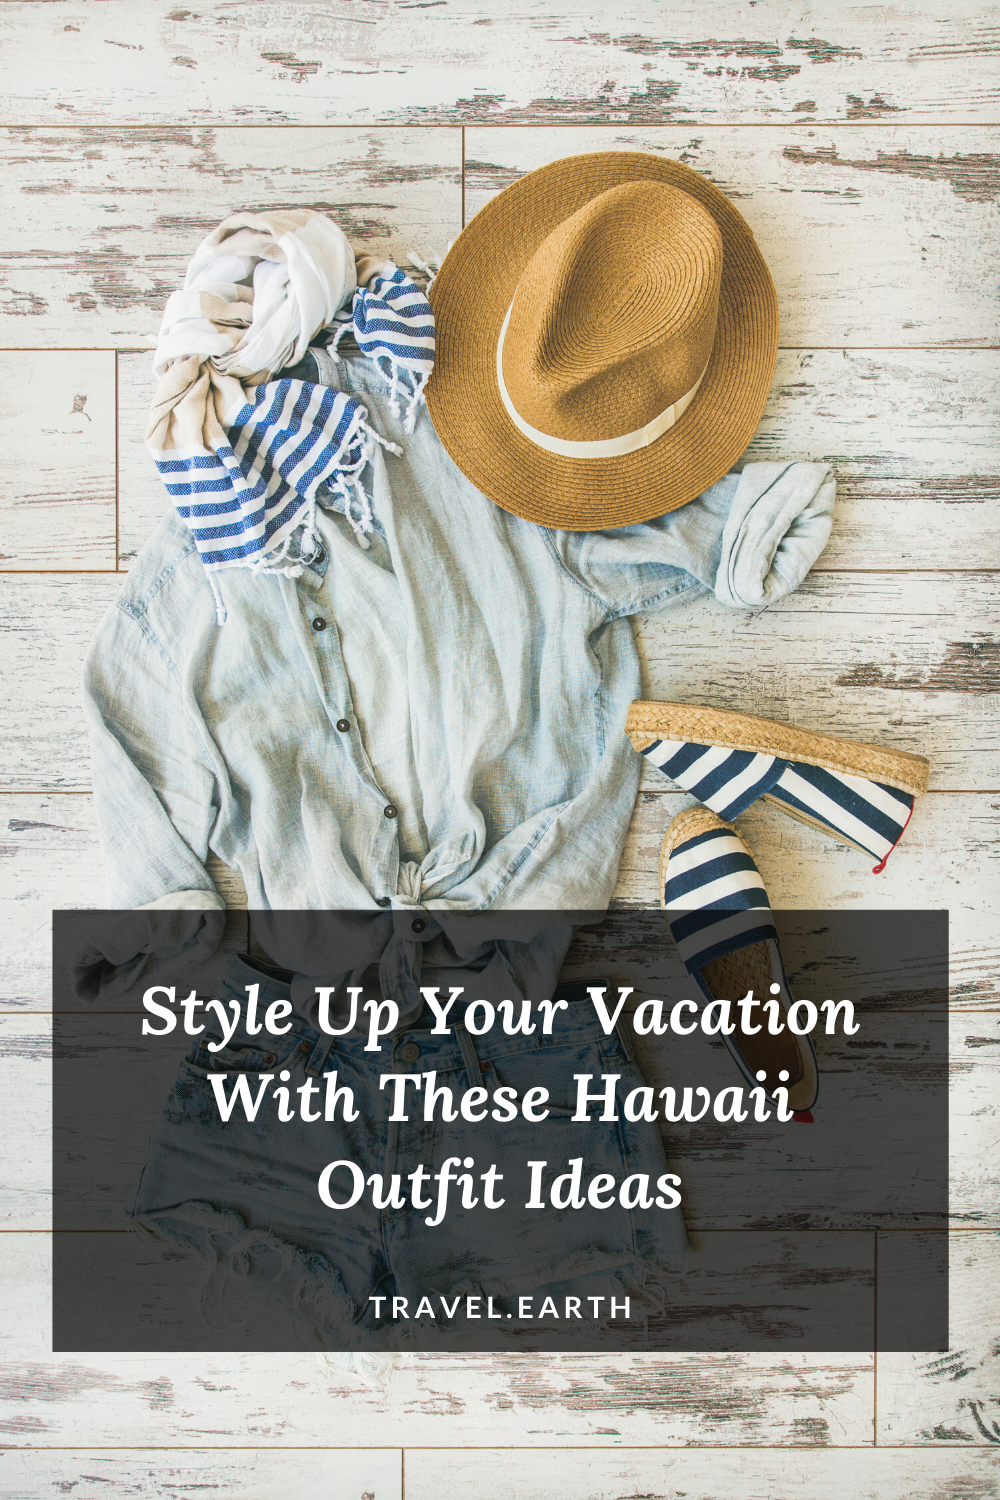 Style Up Your Vacation With These Hawaii Outfit Ideas